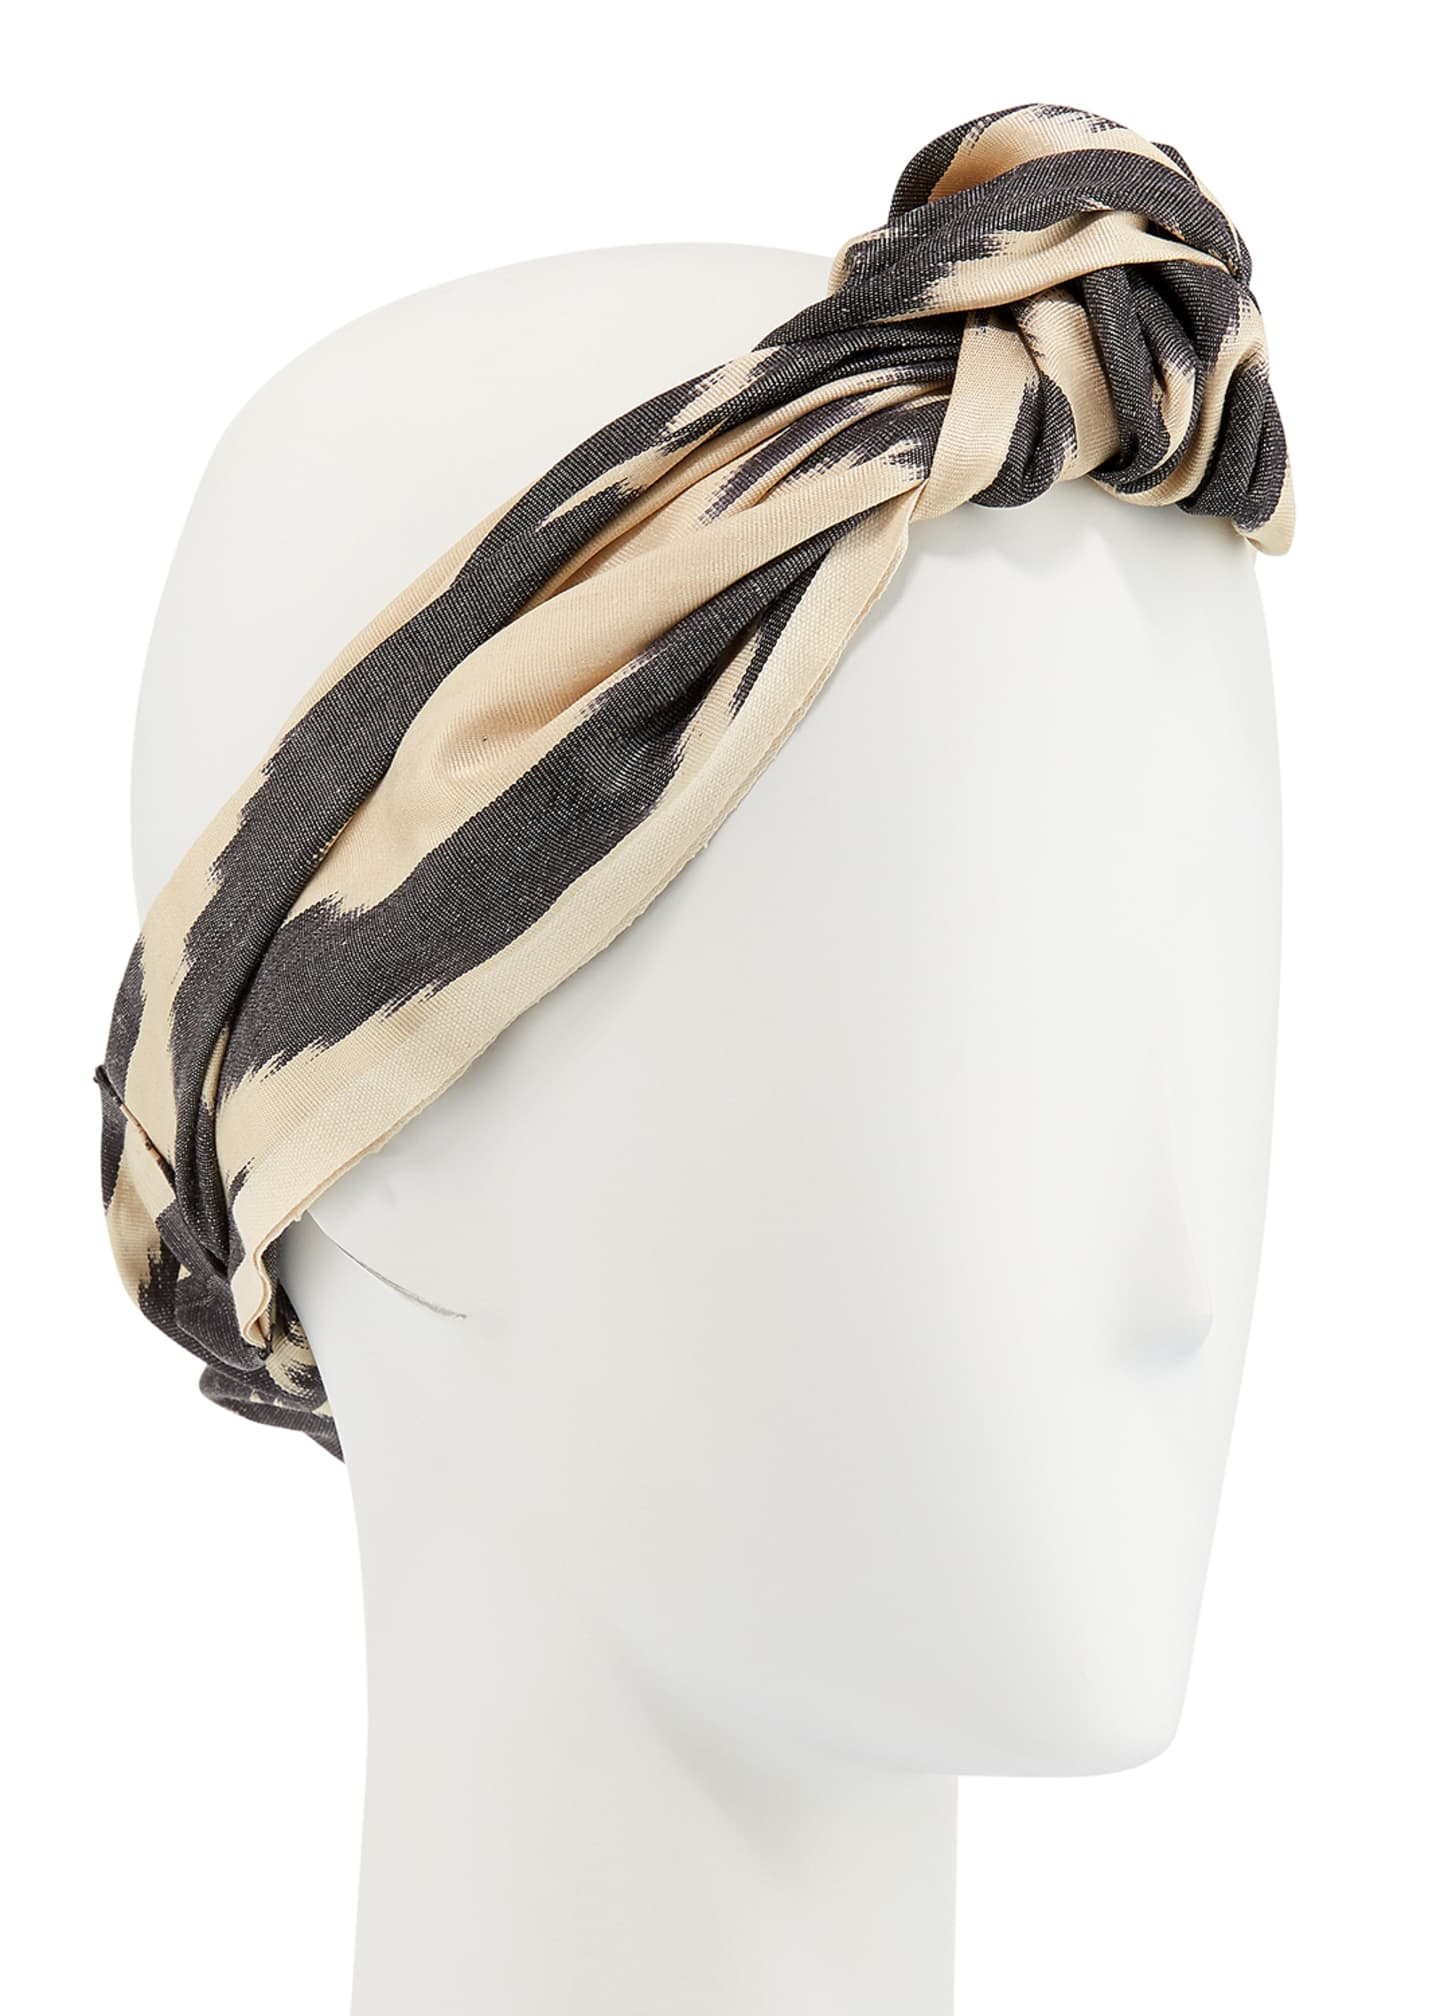 Jennifer Behr Marin Silk Turban Headband